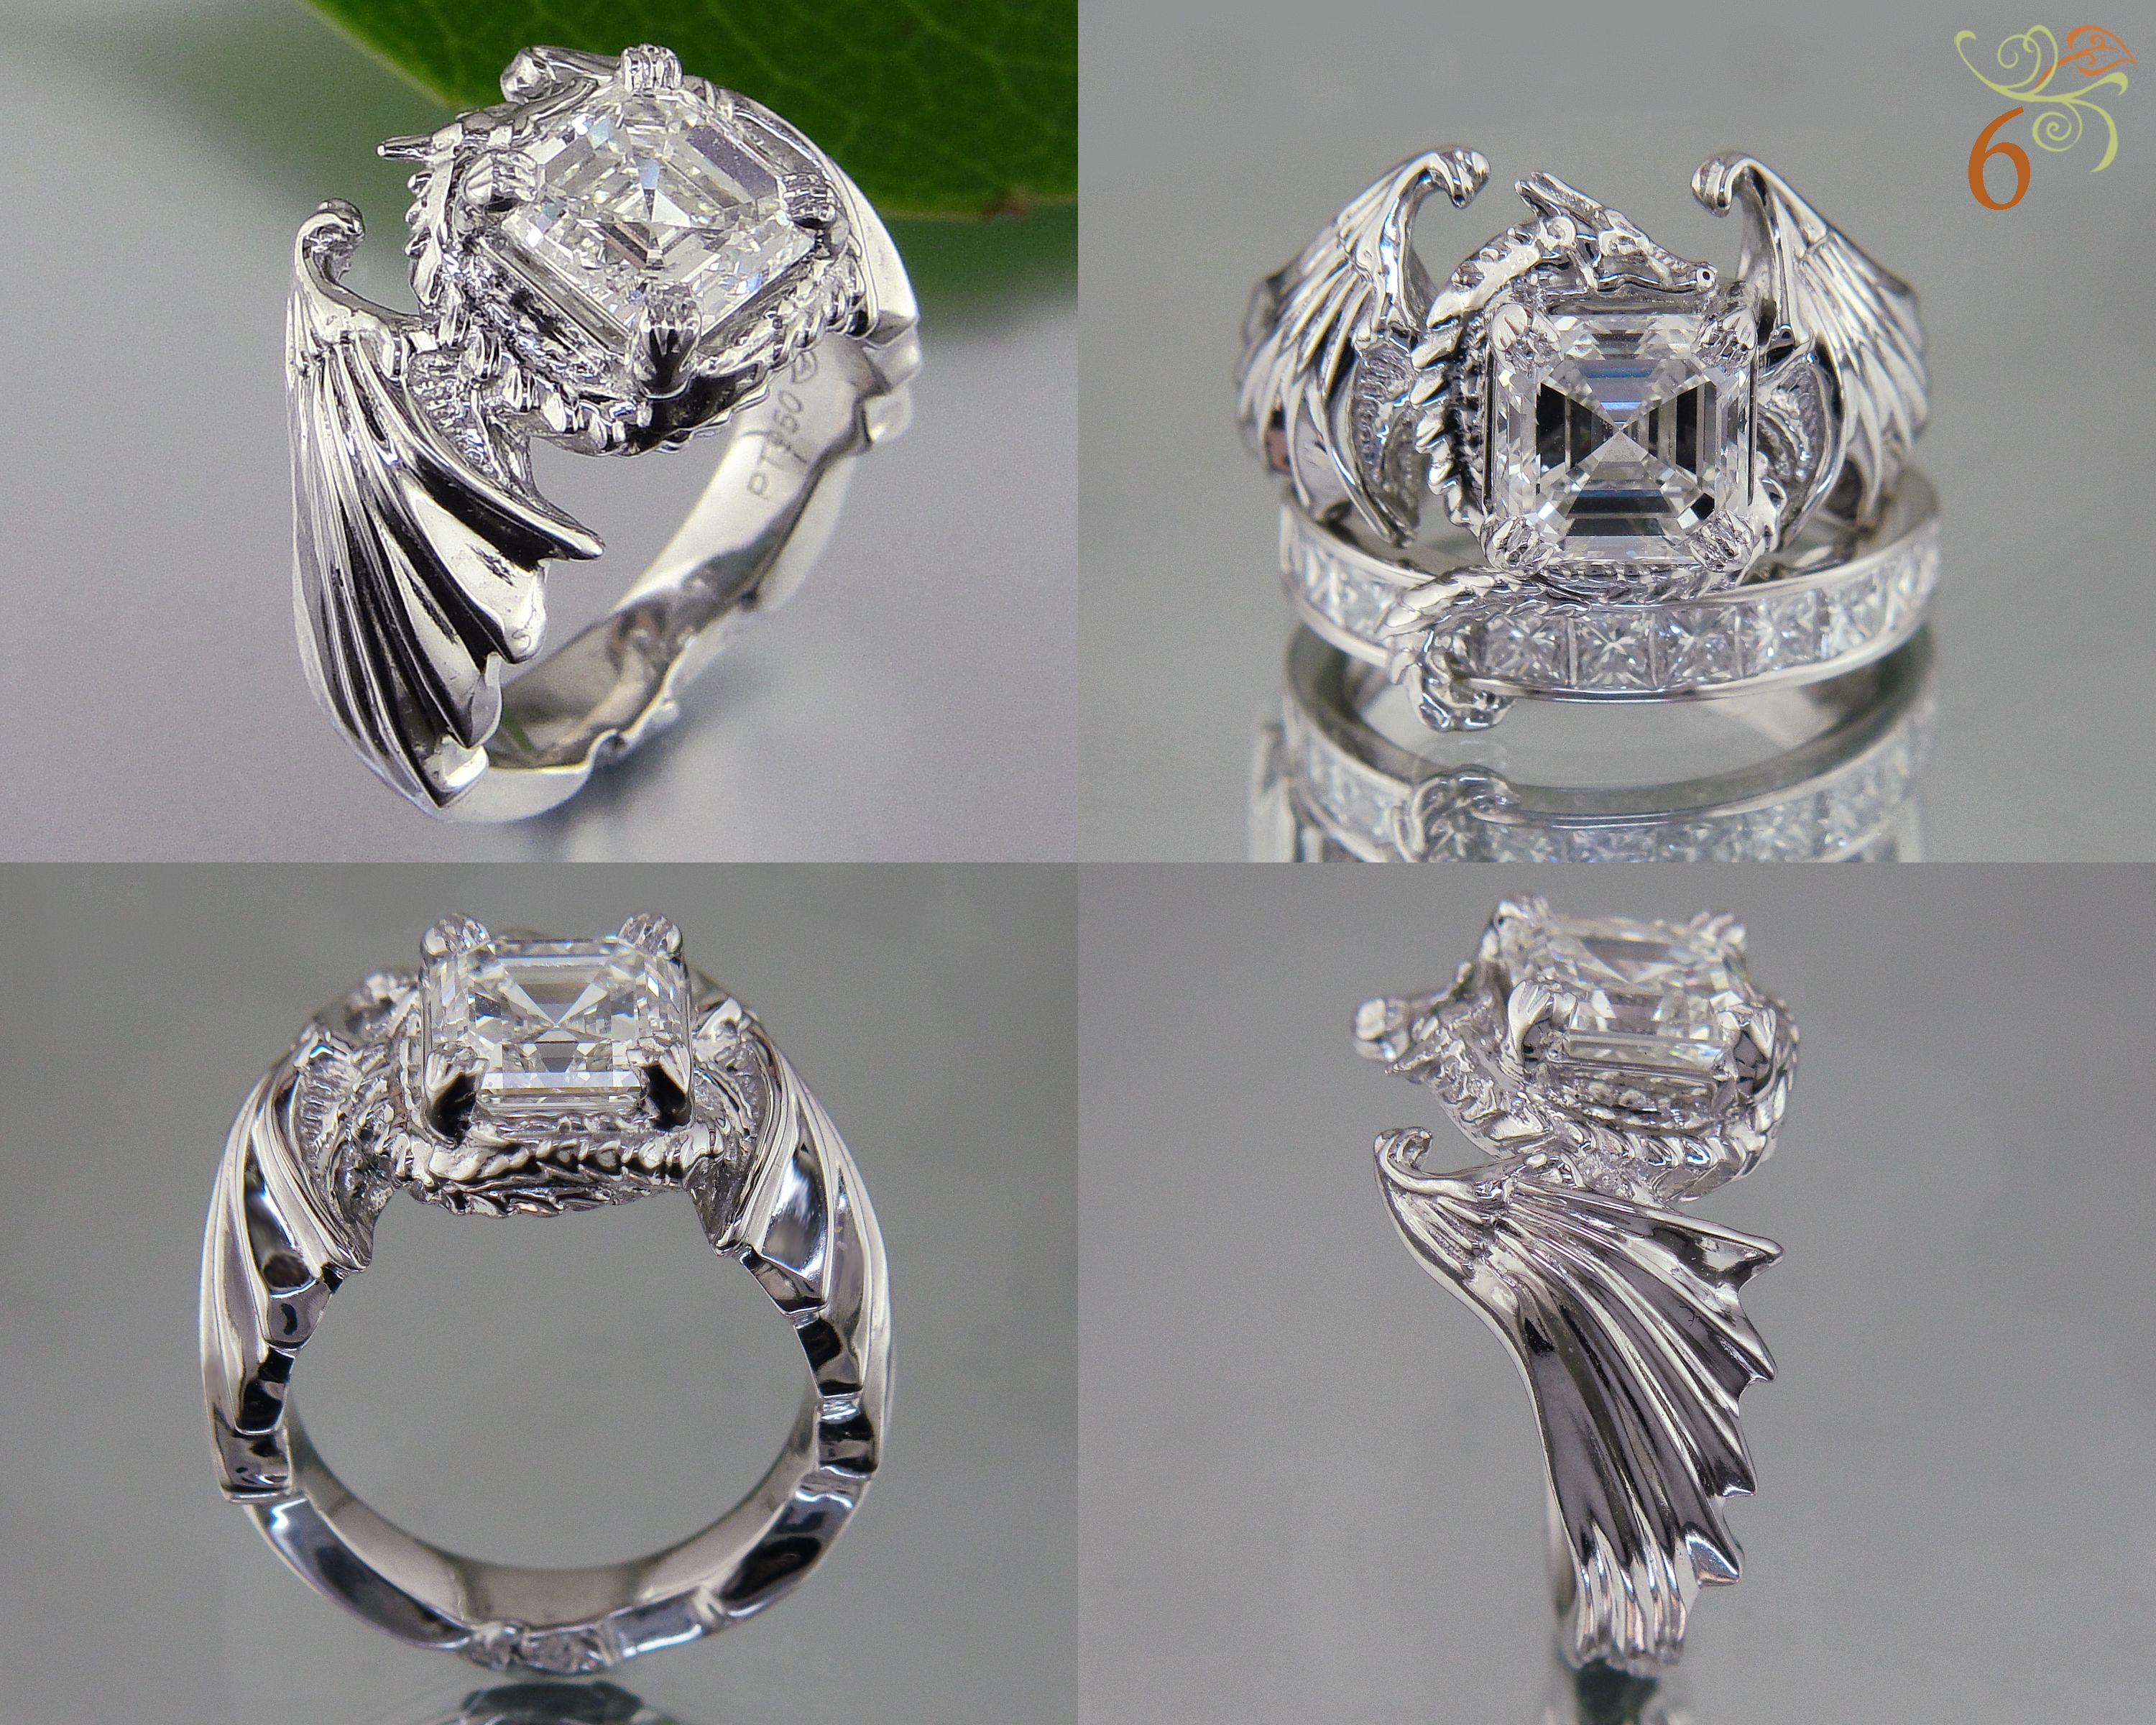 Dragon ring with asscher centerstone and its tail wrapped over the